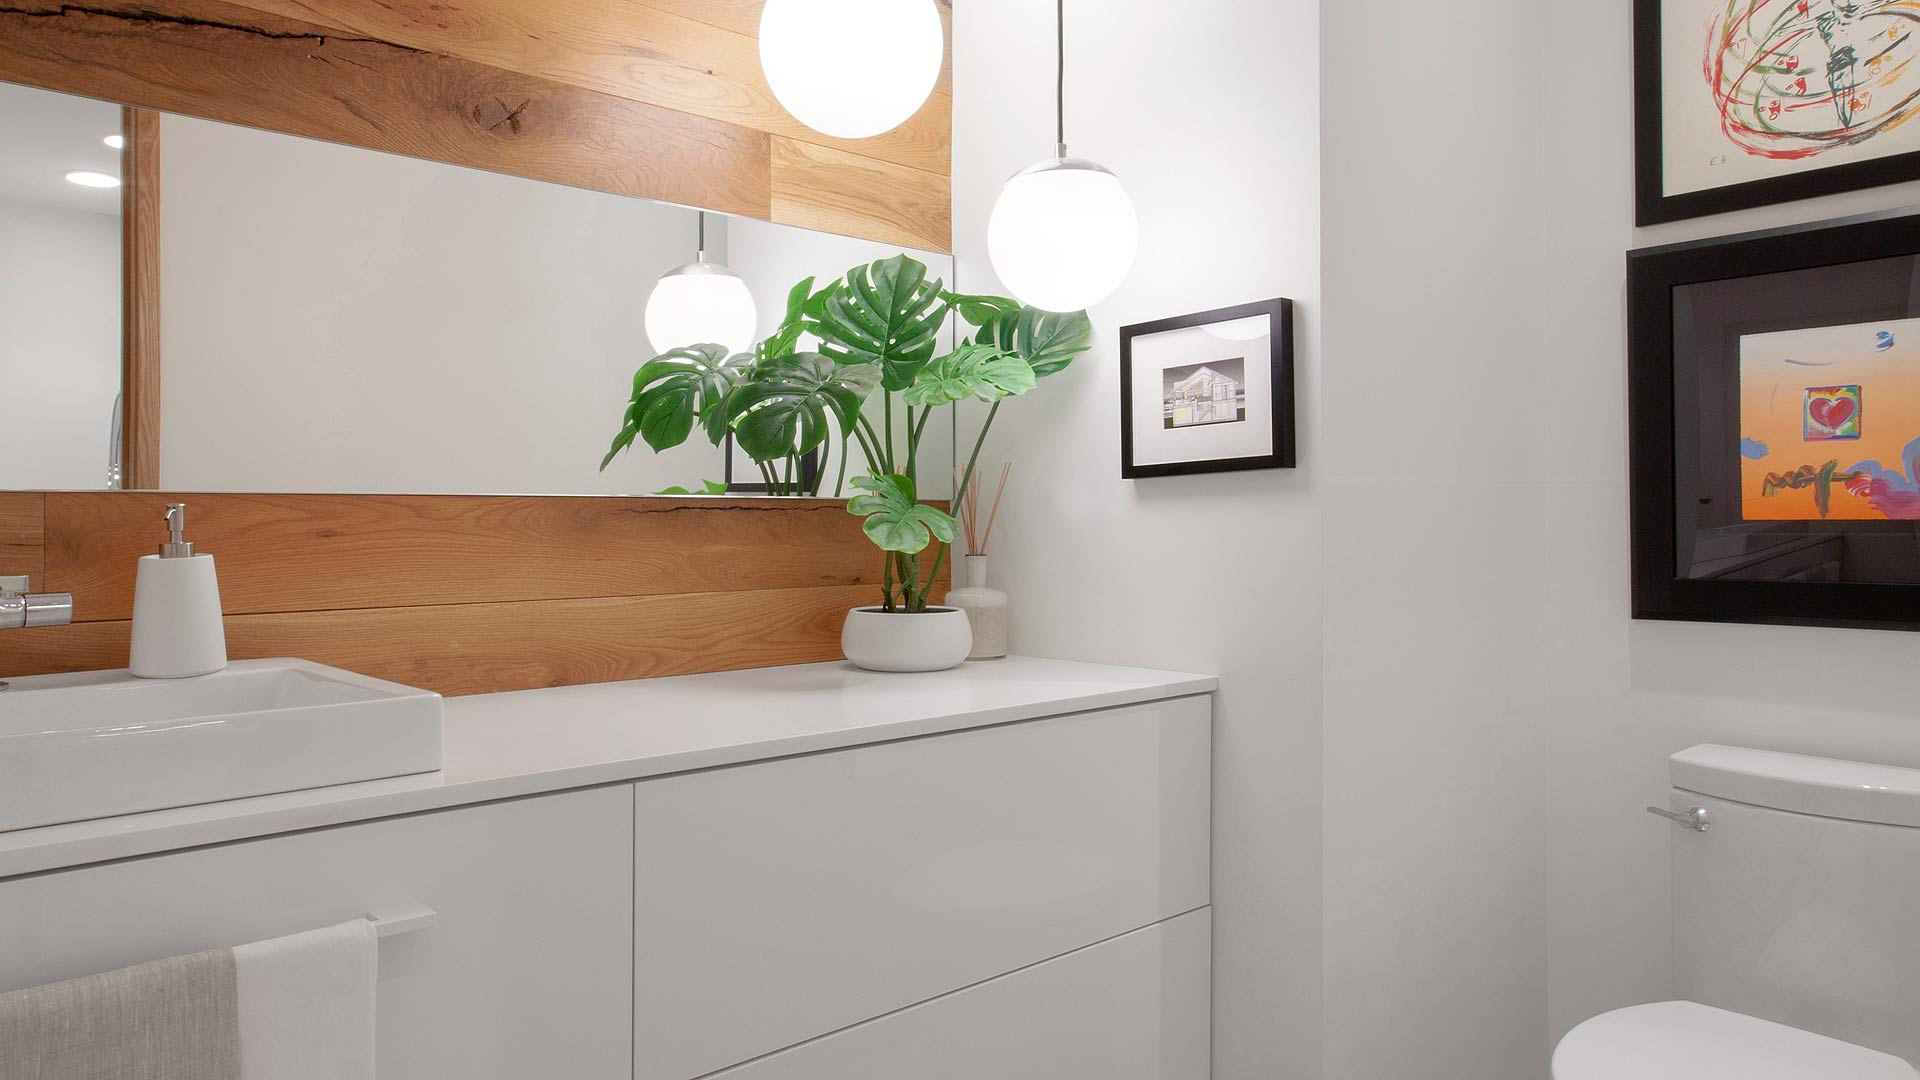 New powder room incorporates white oak into vanity wall with floating white vanity, horizontal mirror, and ball pendant lighting - as always, client adds nice personal touches including plants and artwork - Modern Lakehouse Renovation - Clearwater